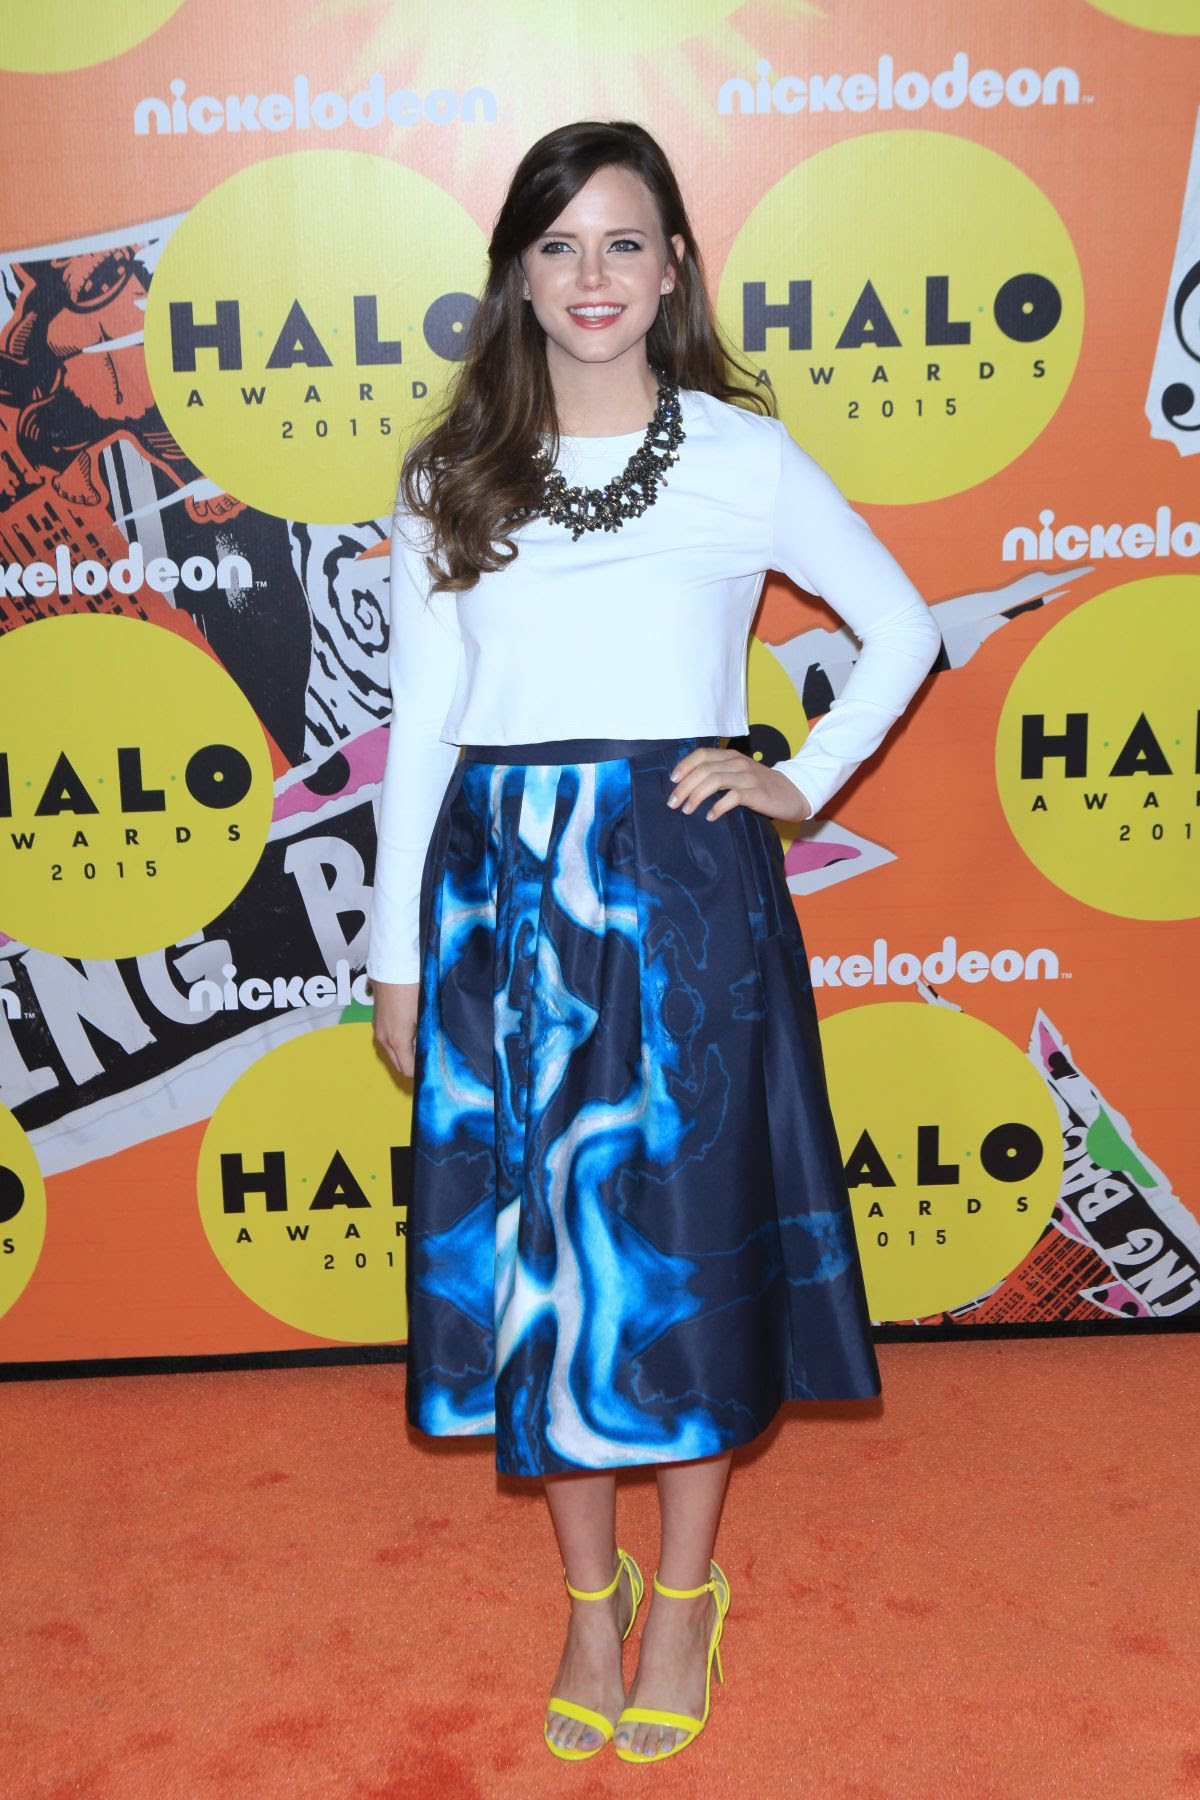 TIFFANY ALVORD at 2015 Nickelodeon Halo Awards in New York 11/14/2015